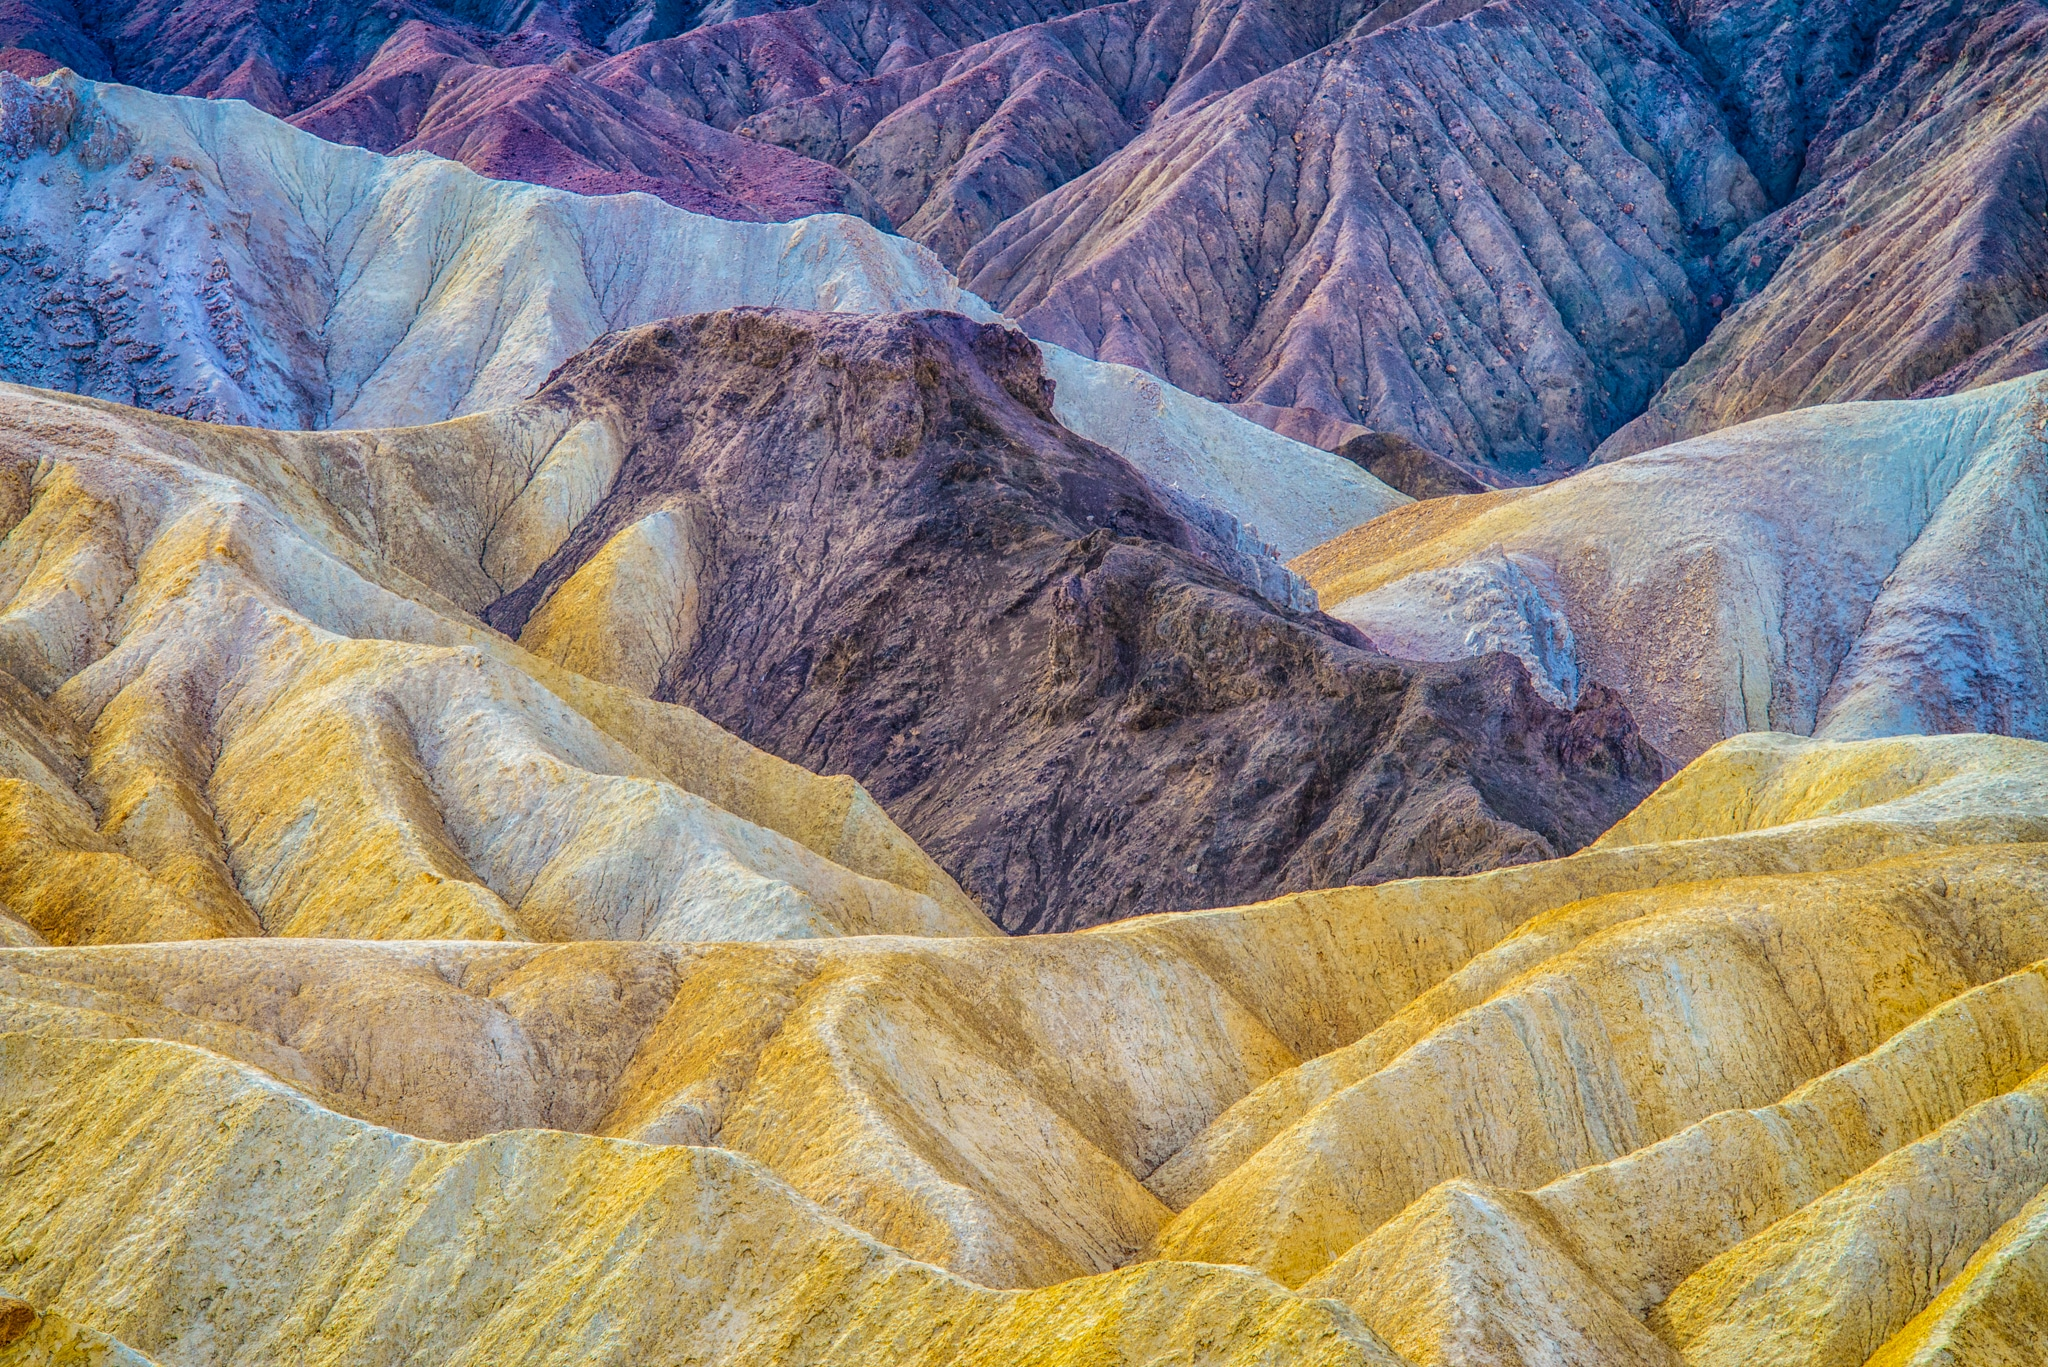 This is a close-up view of the margin between the yellow Furnace Creek Formation and the multi-colored Artist's Drive formation visible from Zabriskie Point Overlook, which is accessible from Highway 190 in Death Valley National Park.